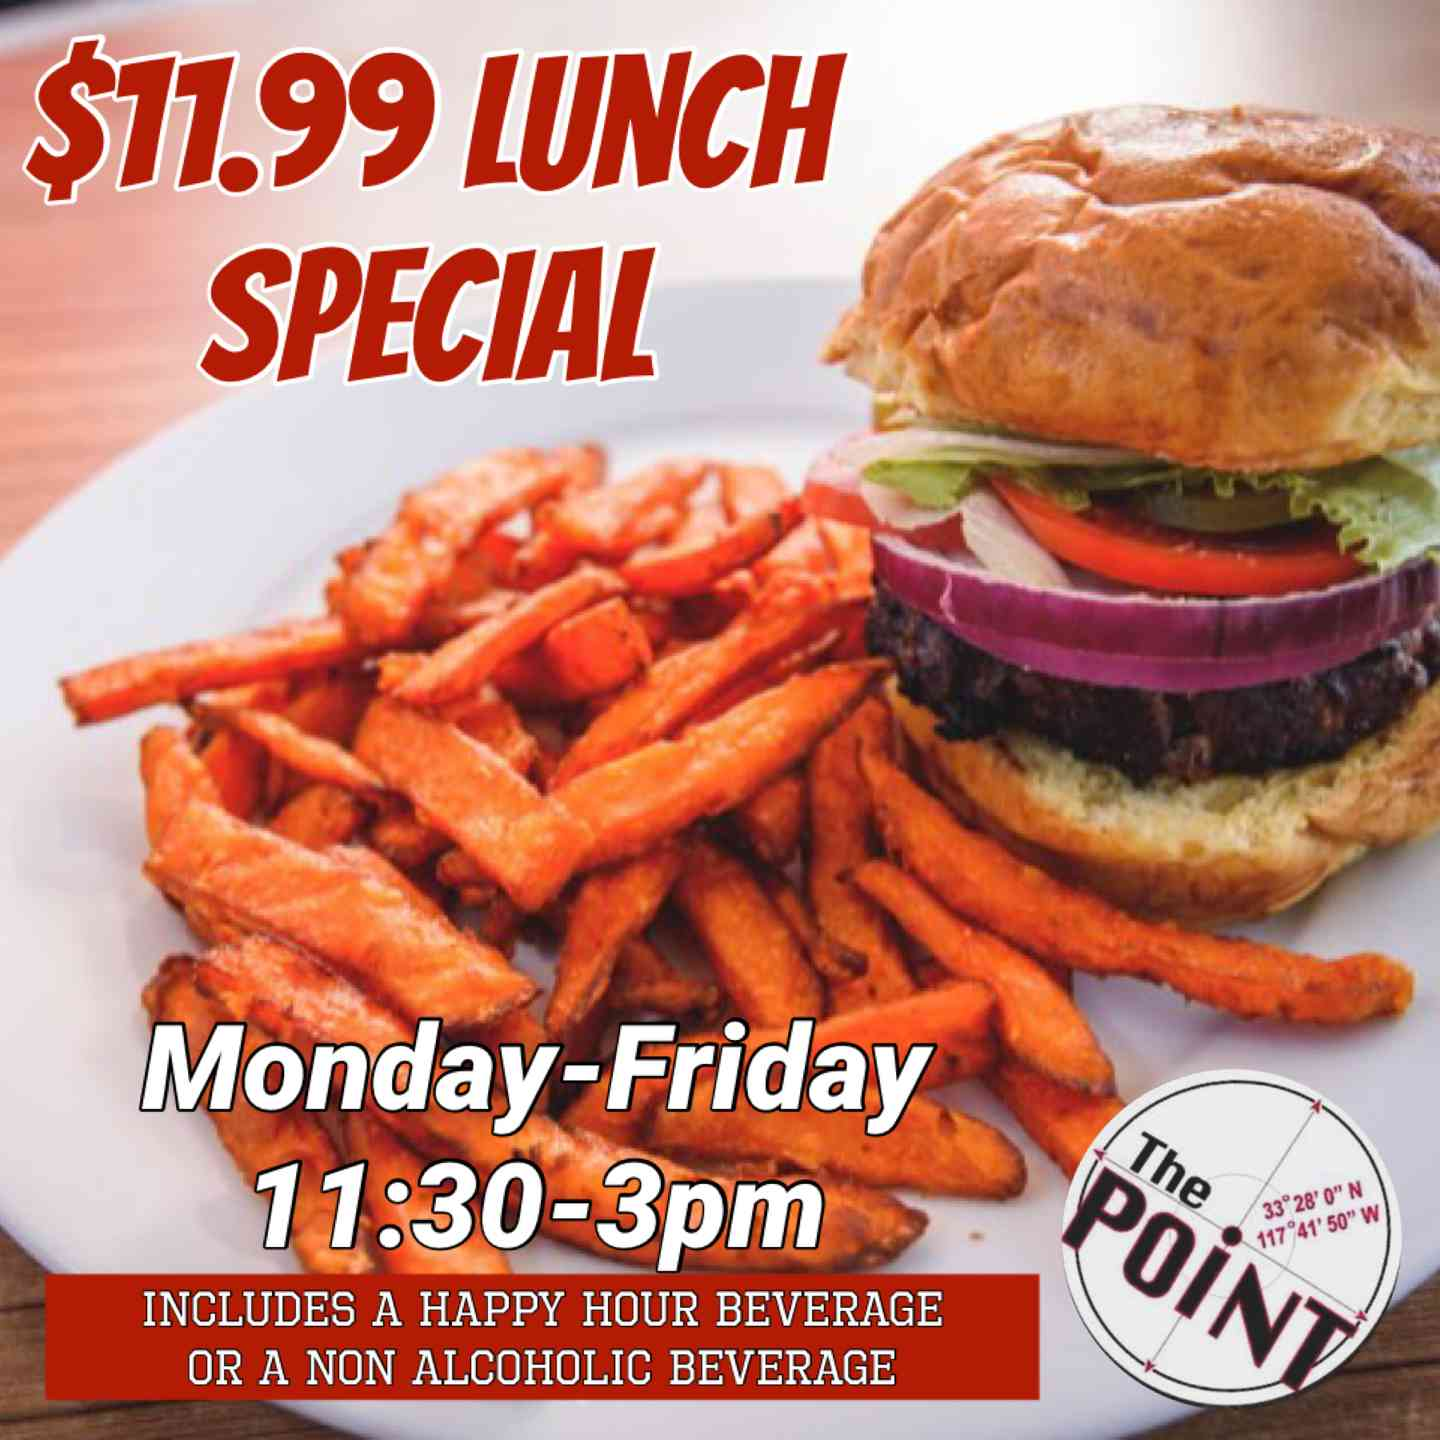 lunch specials $11.99